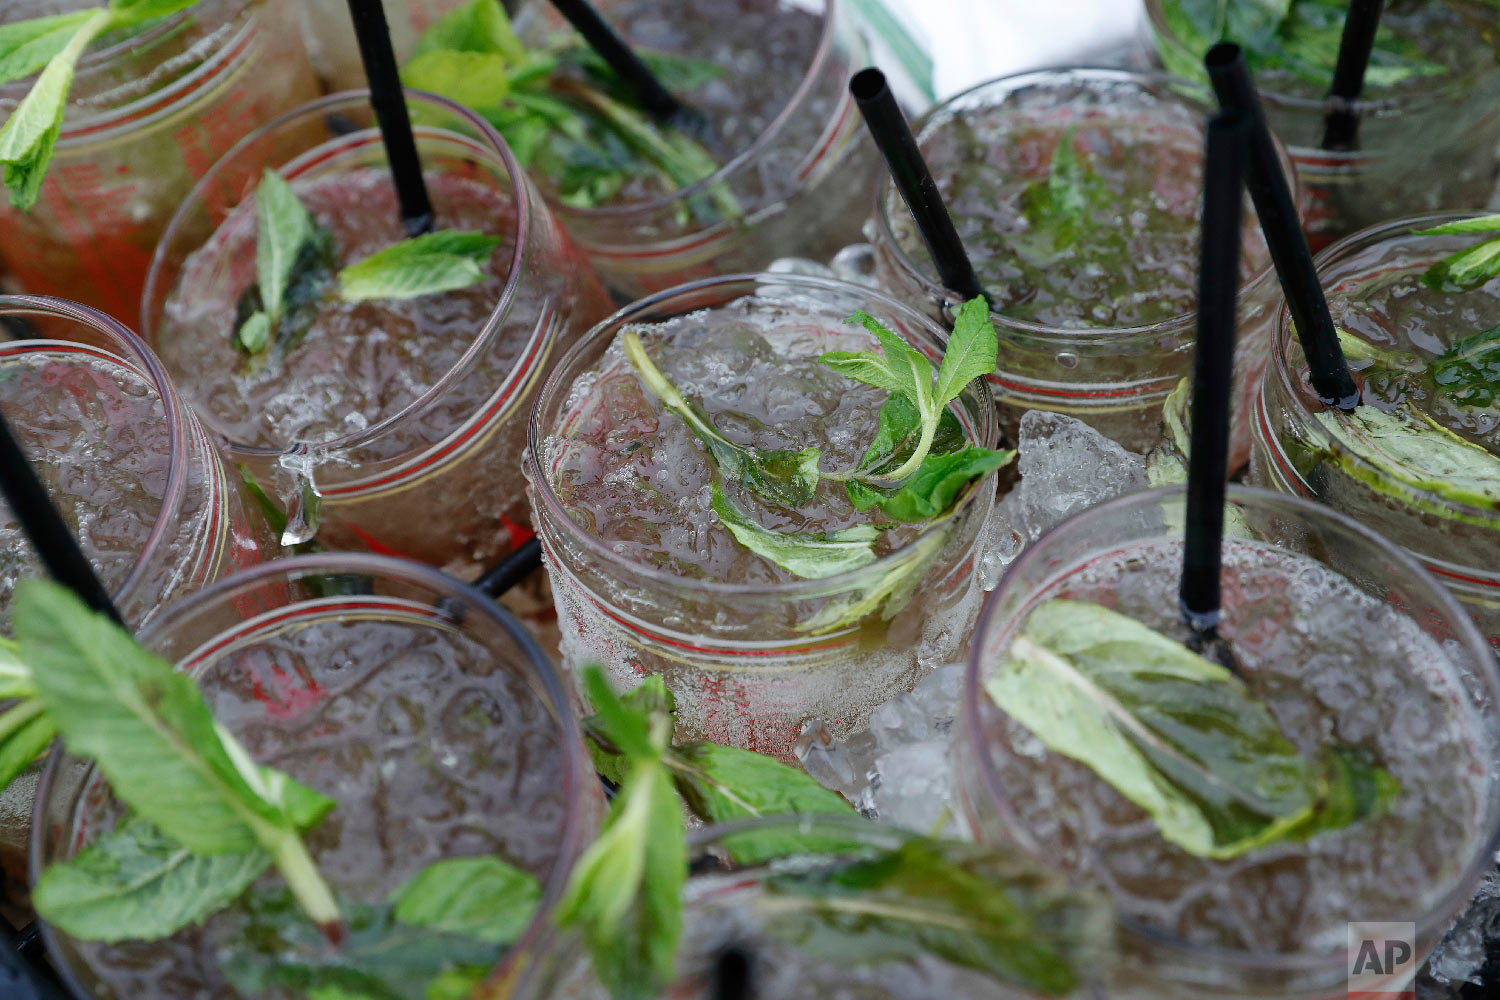 A vendor carries a tray Mint Julep glasses before the 144th running of the Kentucky Derby horse race at Churchill Downs Saturday, May 5, 2018, in Louisville, Ky. (AP Photo/Jeff Roberson)